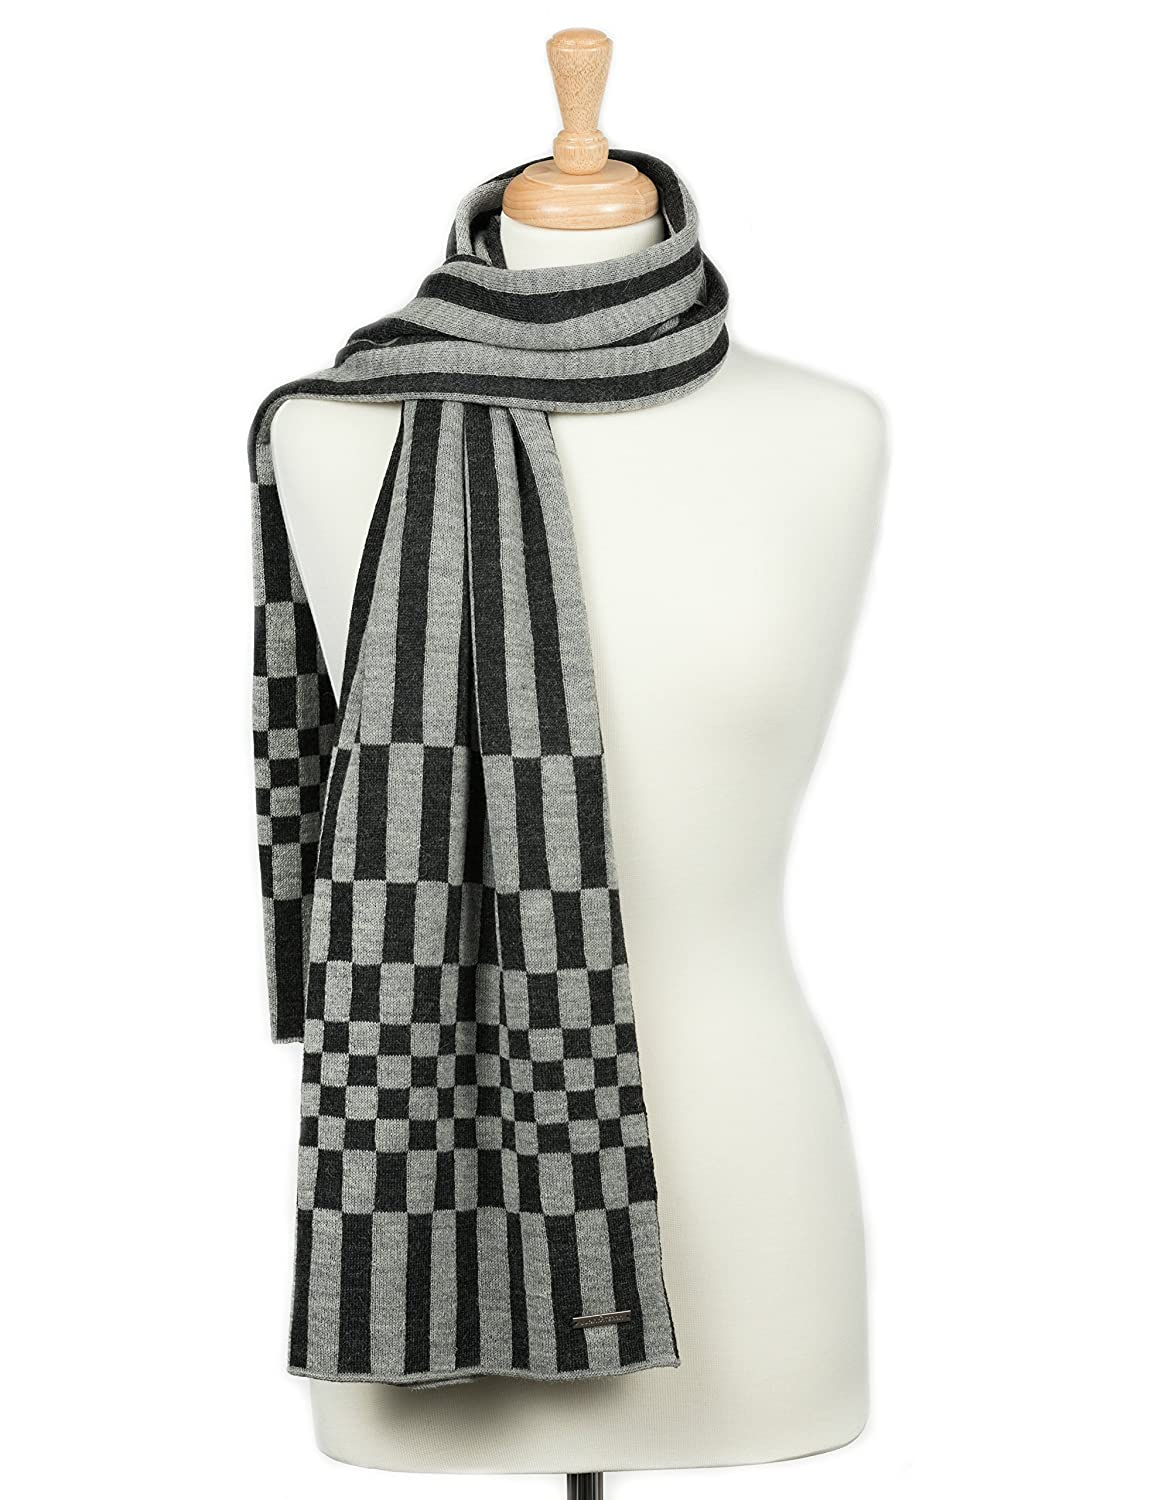 FIRENZE Handmade Knitted 100% Baby Alpaca Wrap Scarf for Women (Charcoal/Silver)